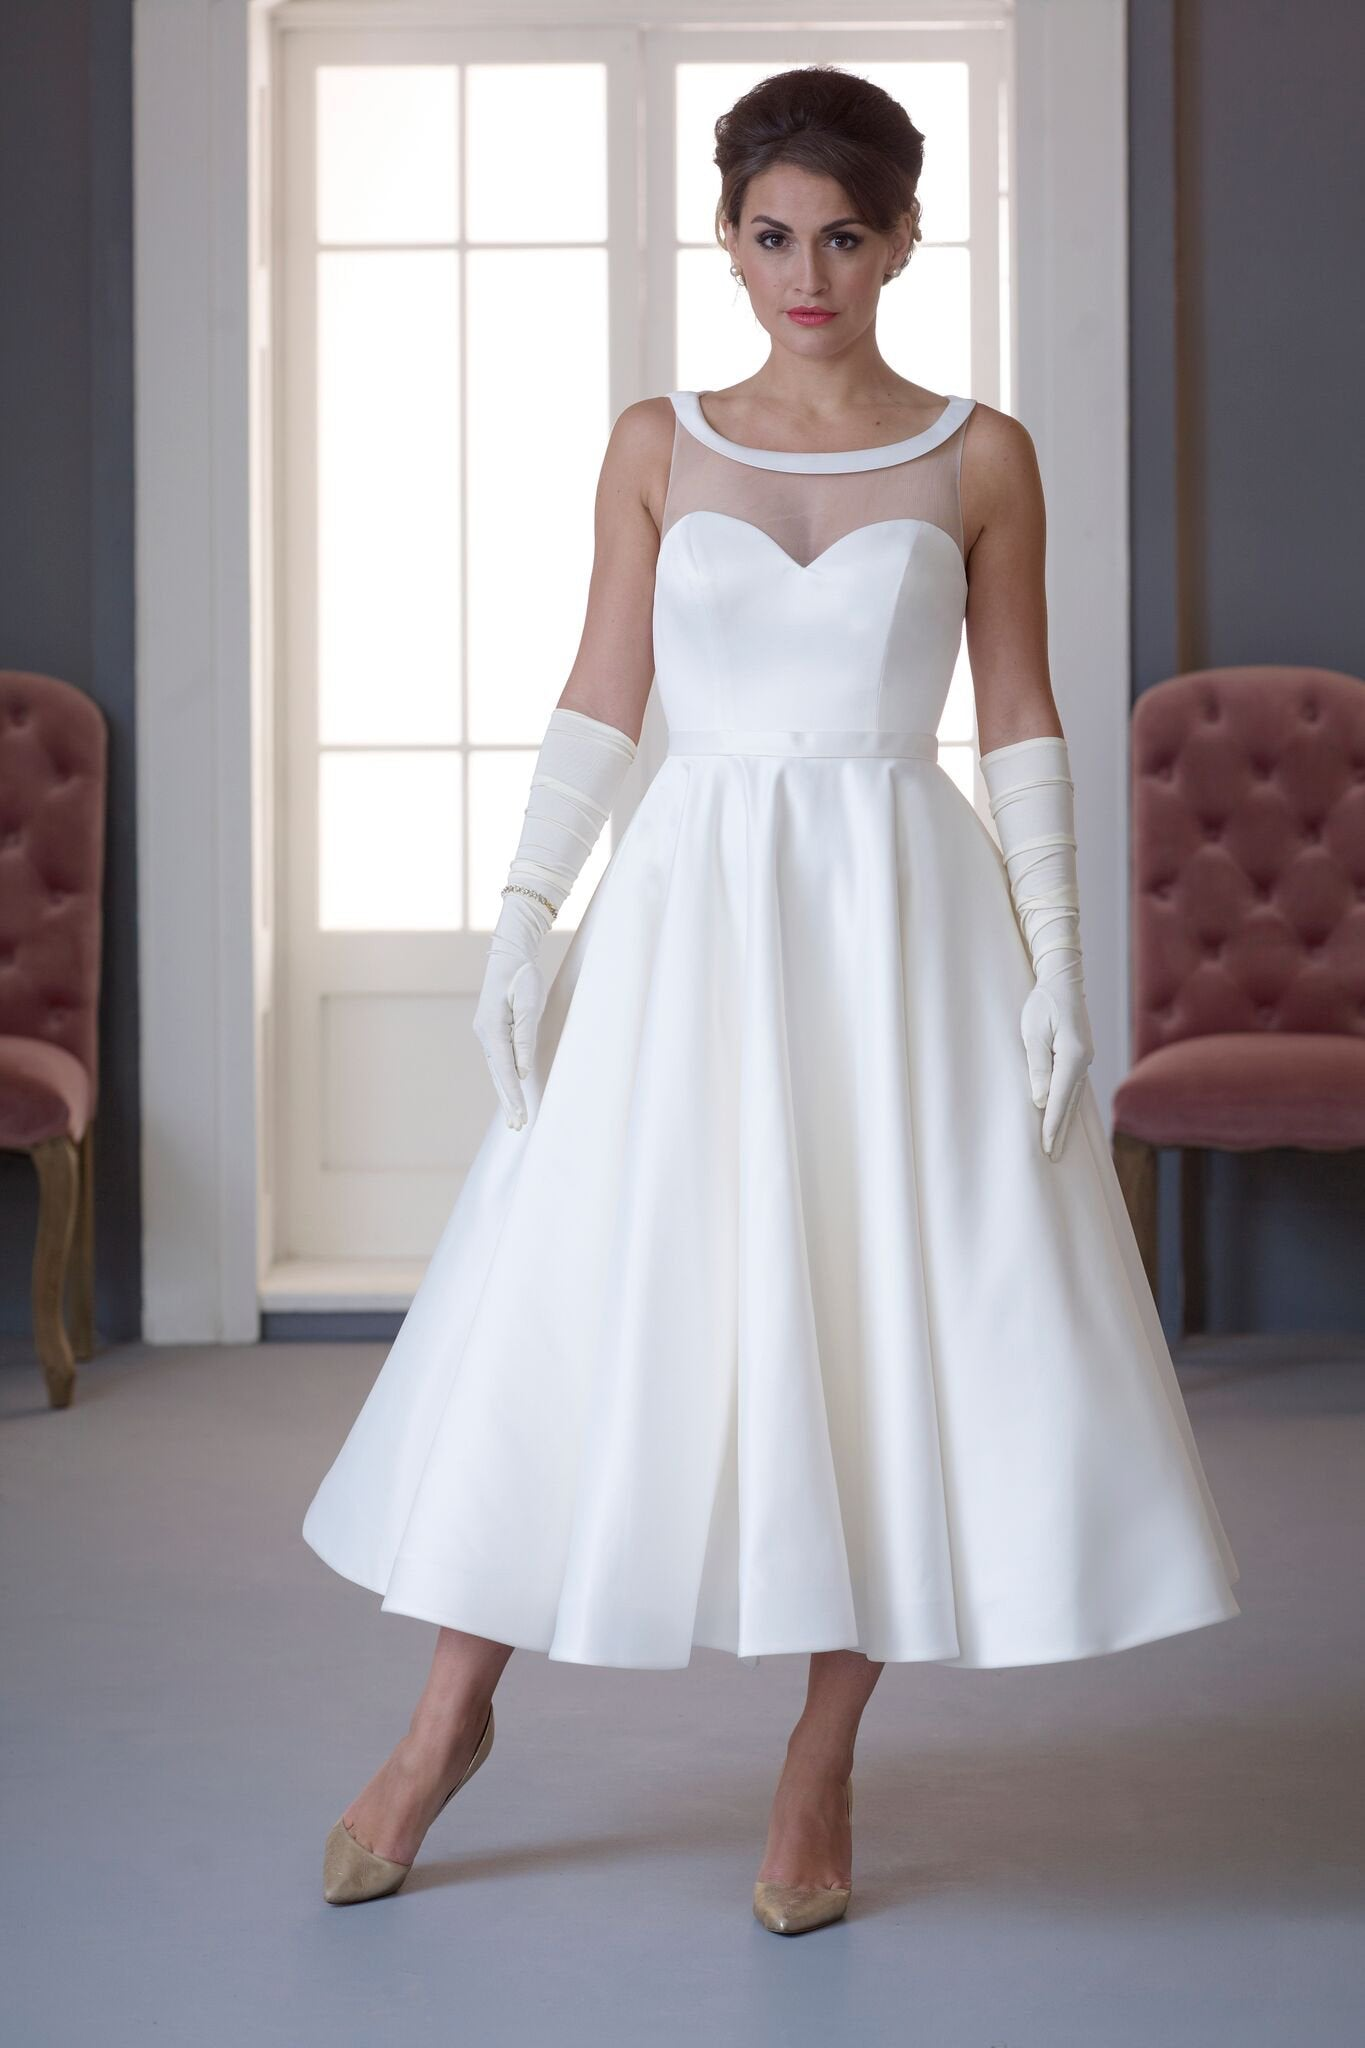 Fifties Style Wedding Dresses